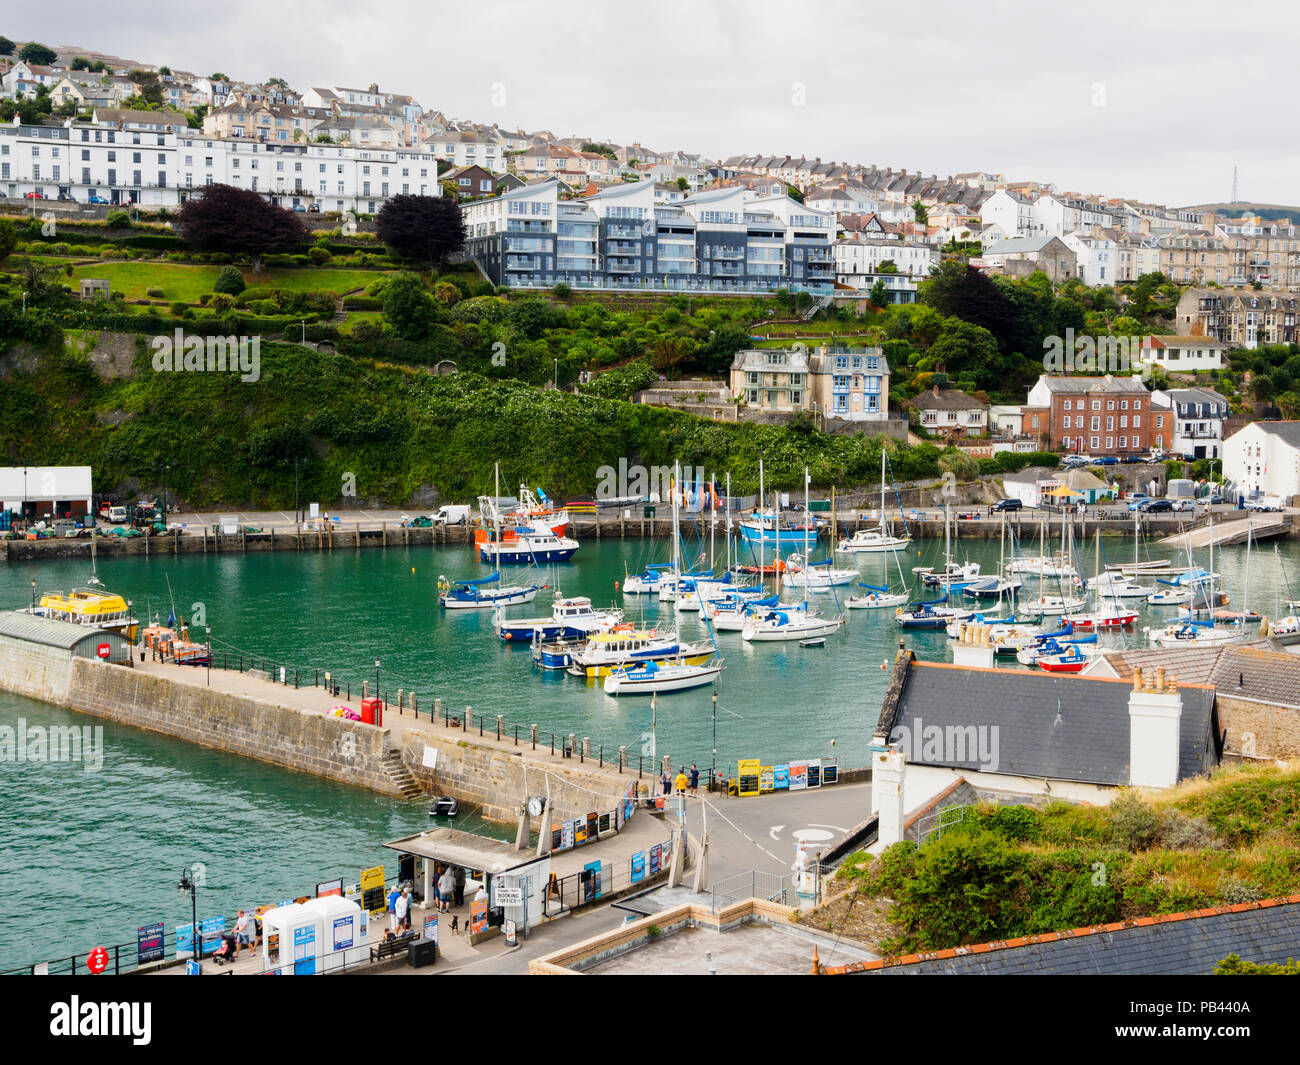 Pleasure and fishing boats in the harbour at Ilfracombe, North Devon, UK Stock Photo